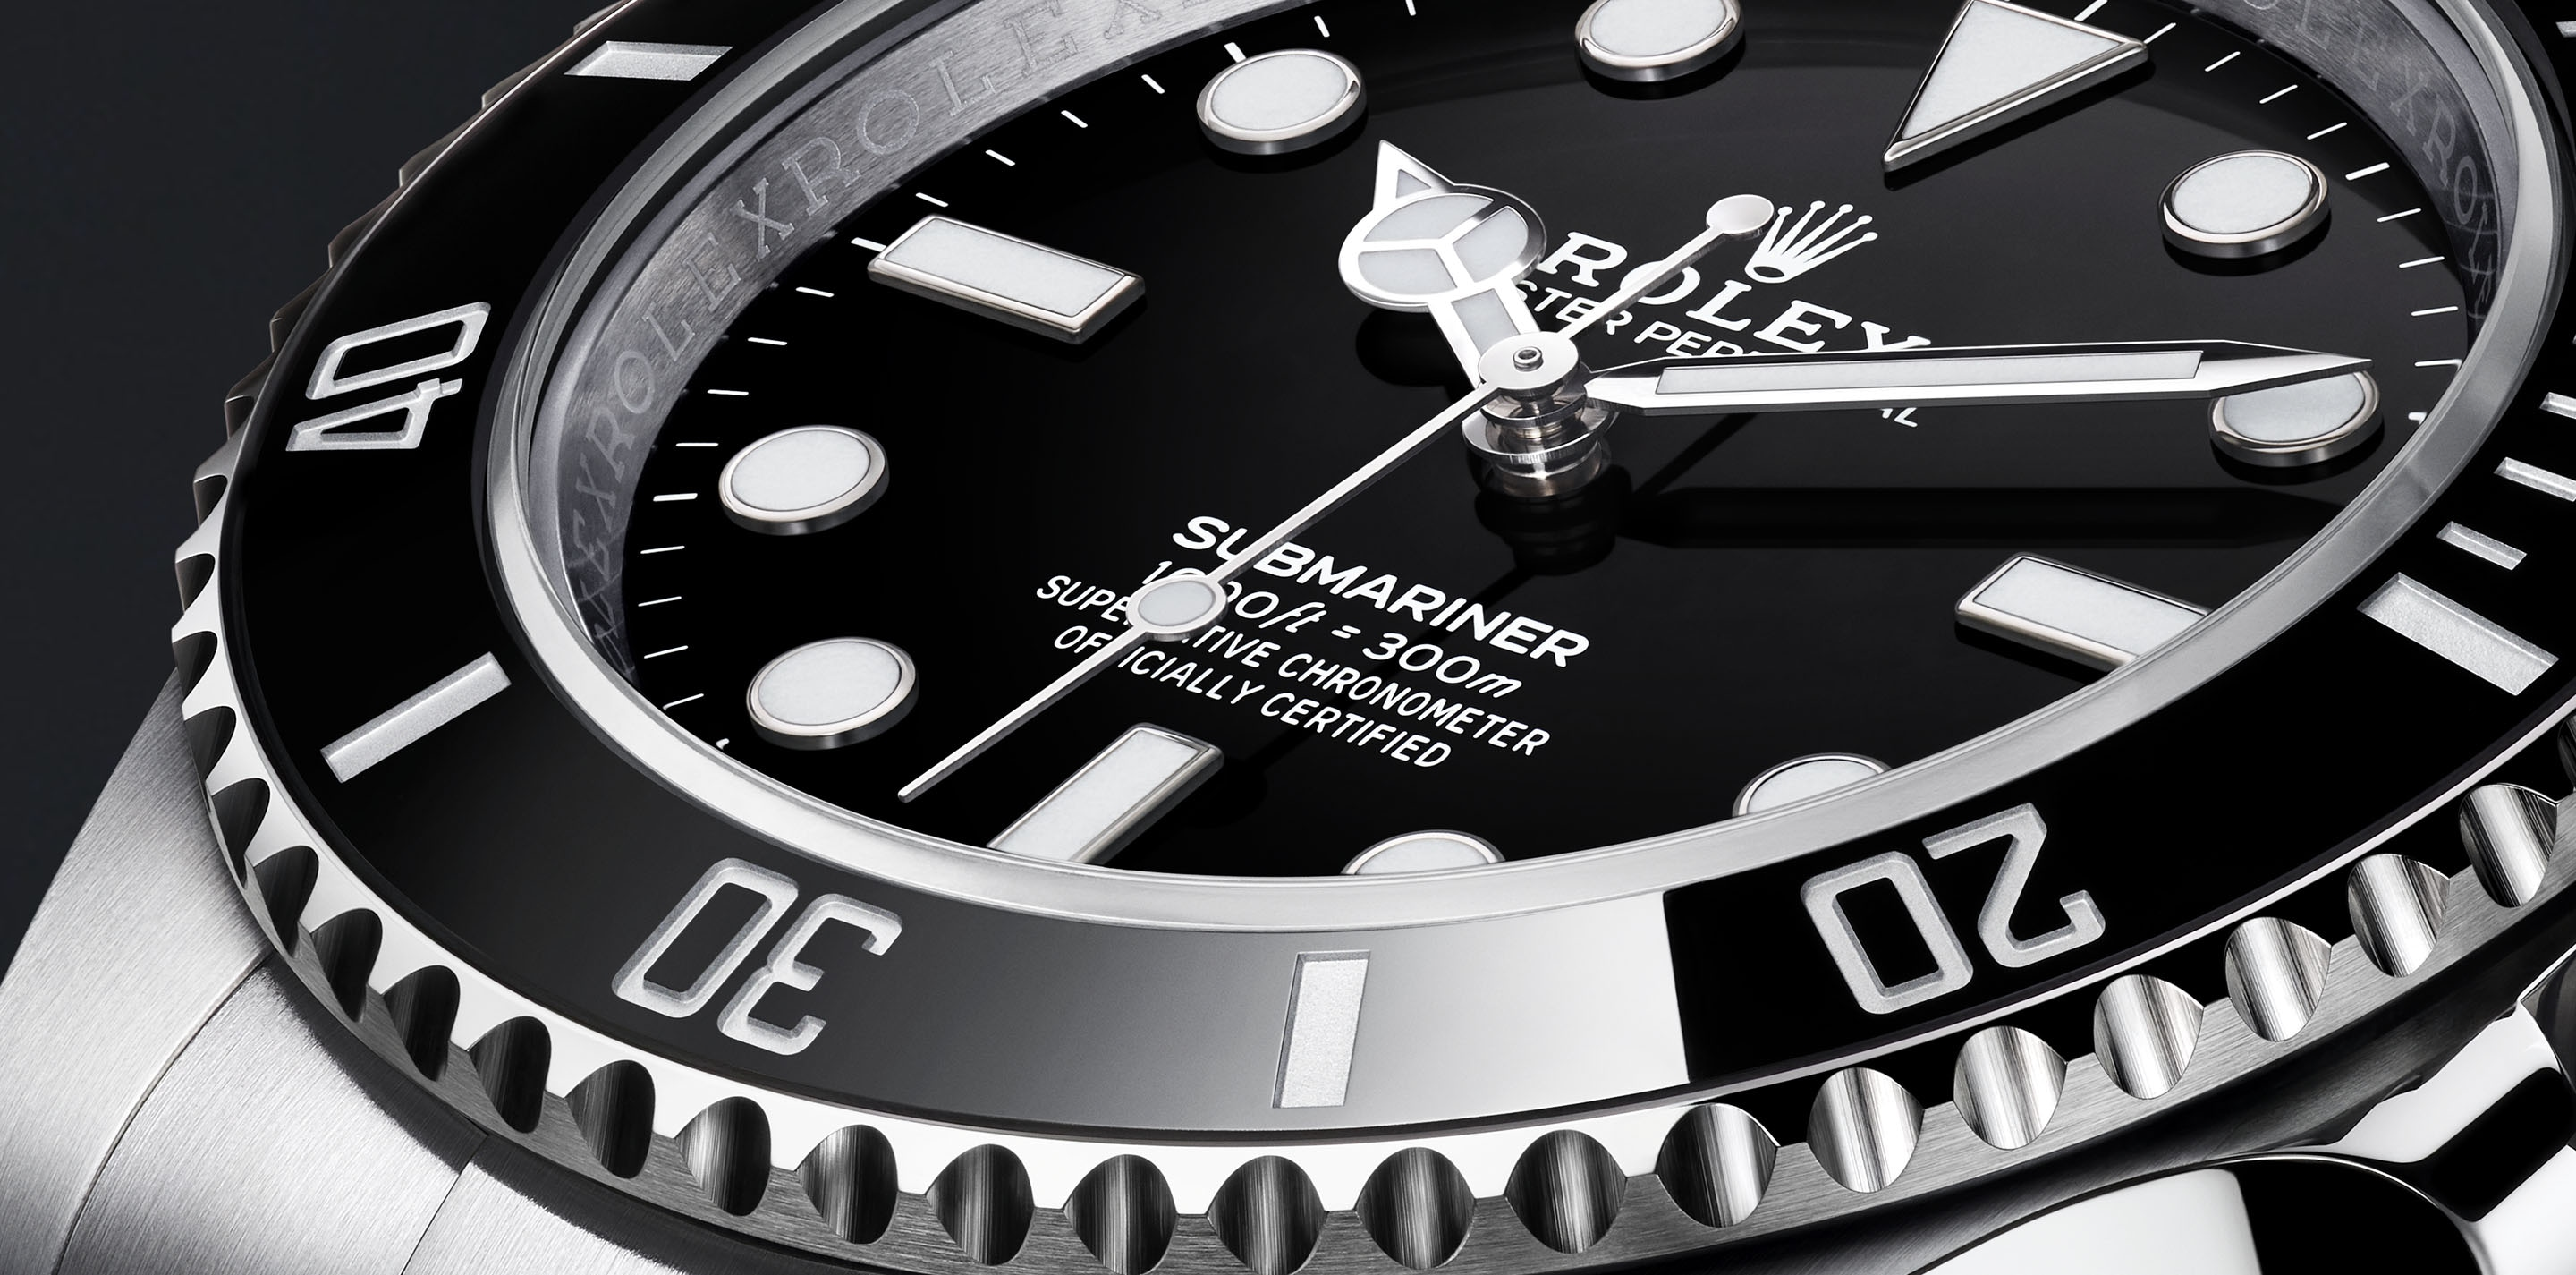 The new Rolex® Submariner non-date watch with a black dial and black Cerachrom bezel